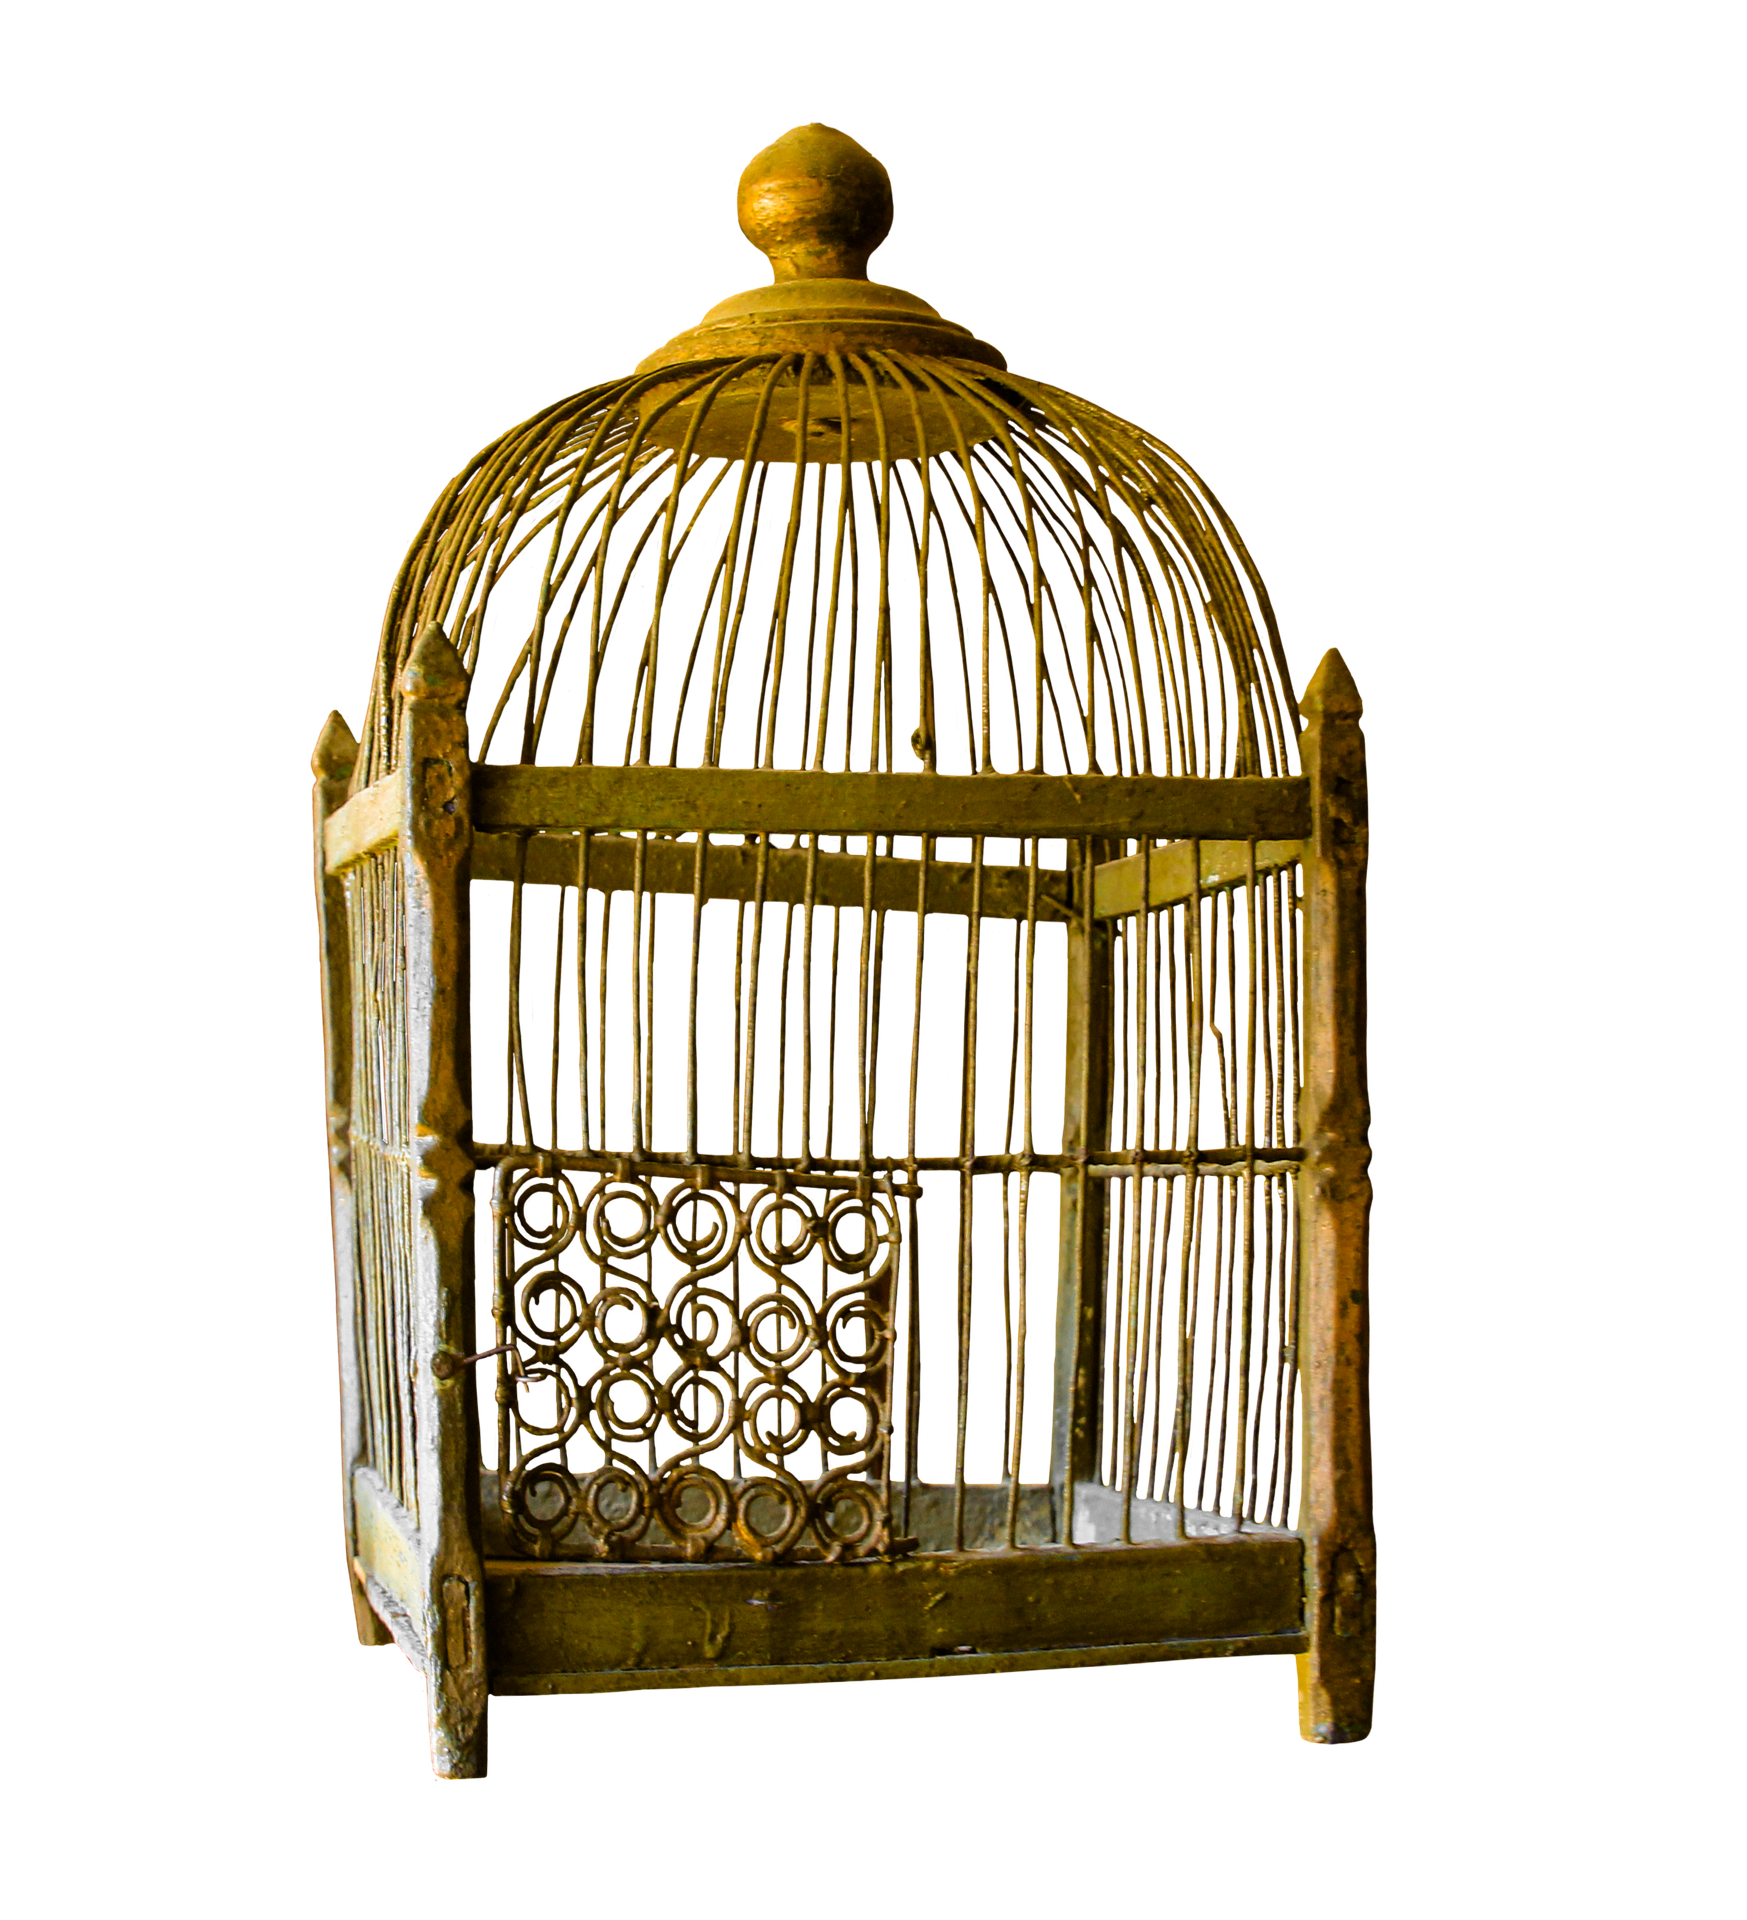 Steel cage png. Free photo prison object